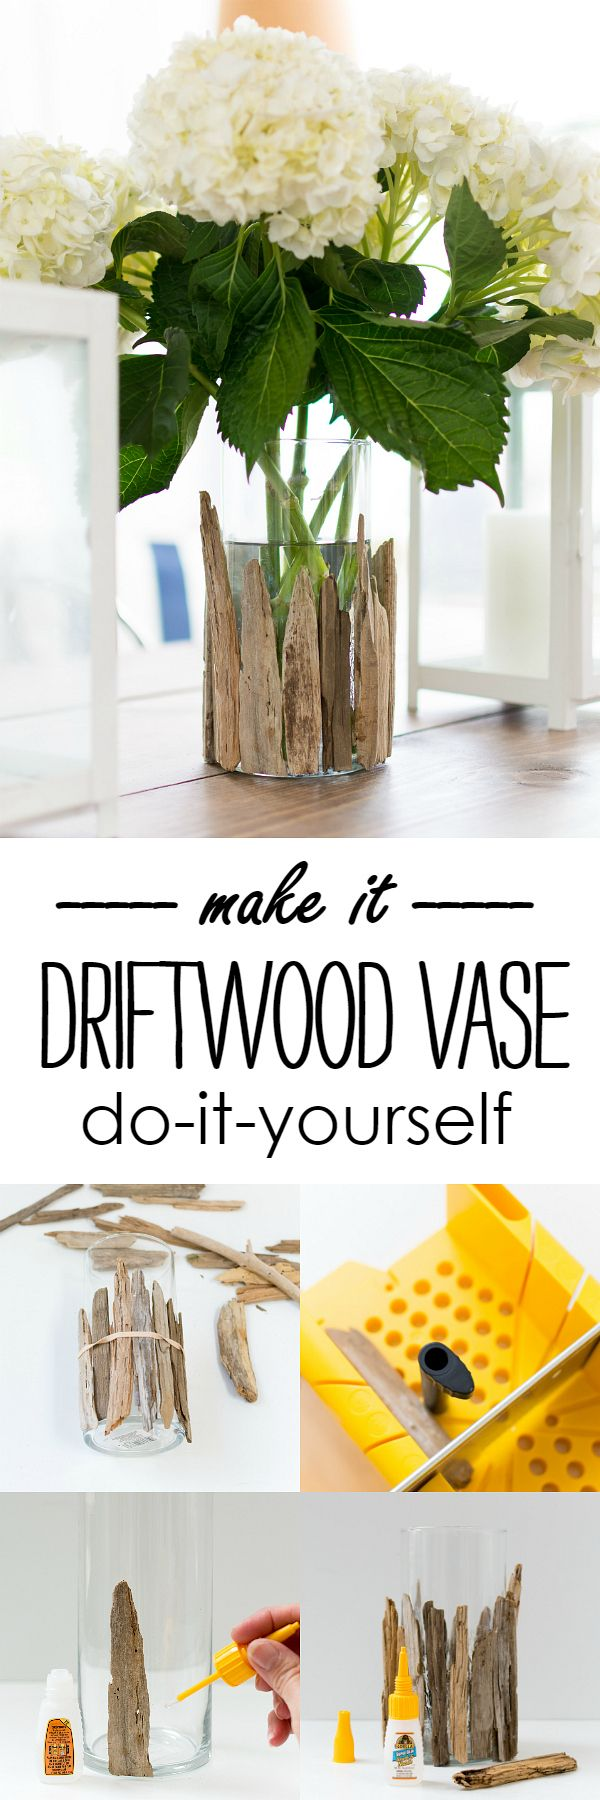 Driftwood Vase DIY & A $250 Gift Card Giveaway! - It All Started With Paint #GorillaTough #GorillaOfCourse #ad